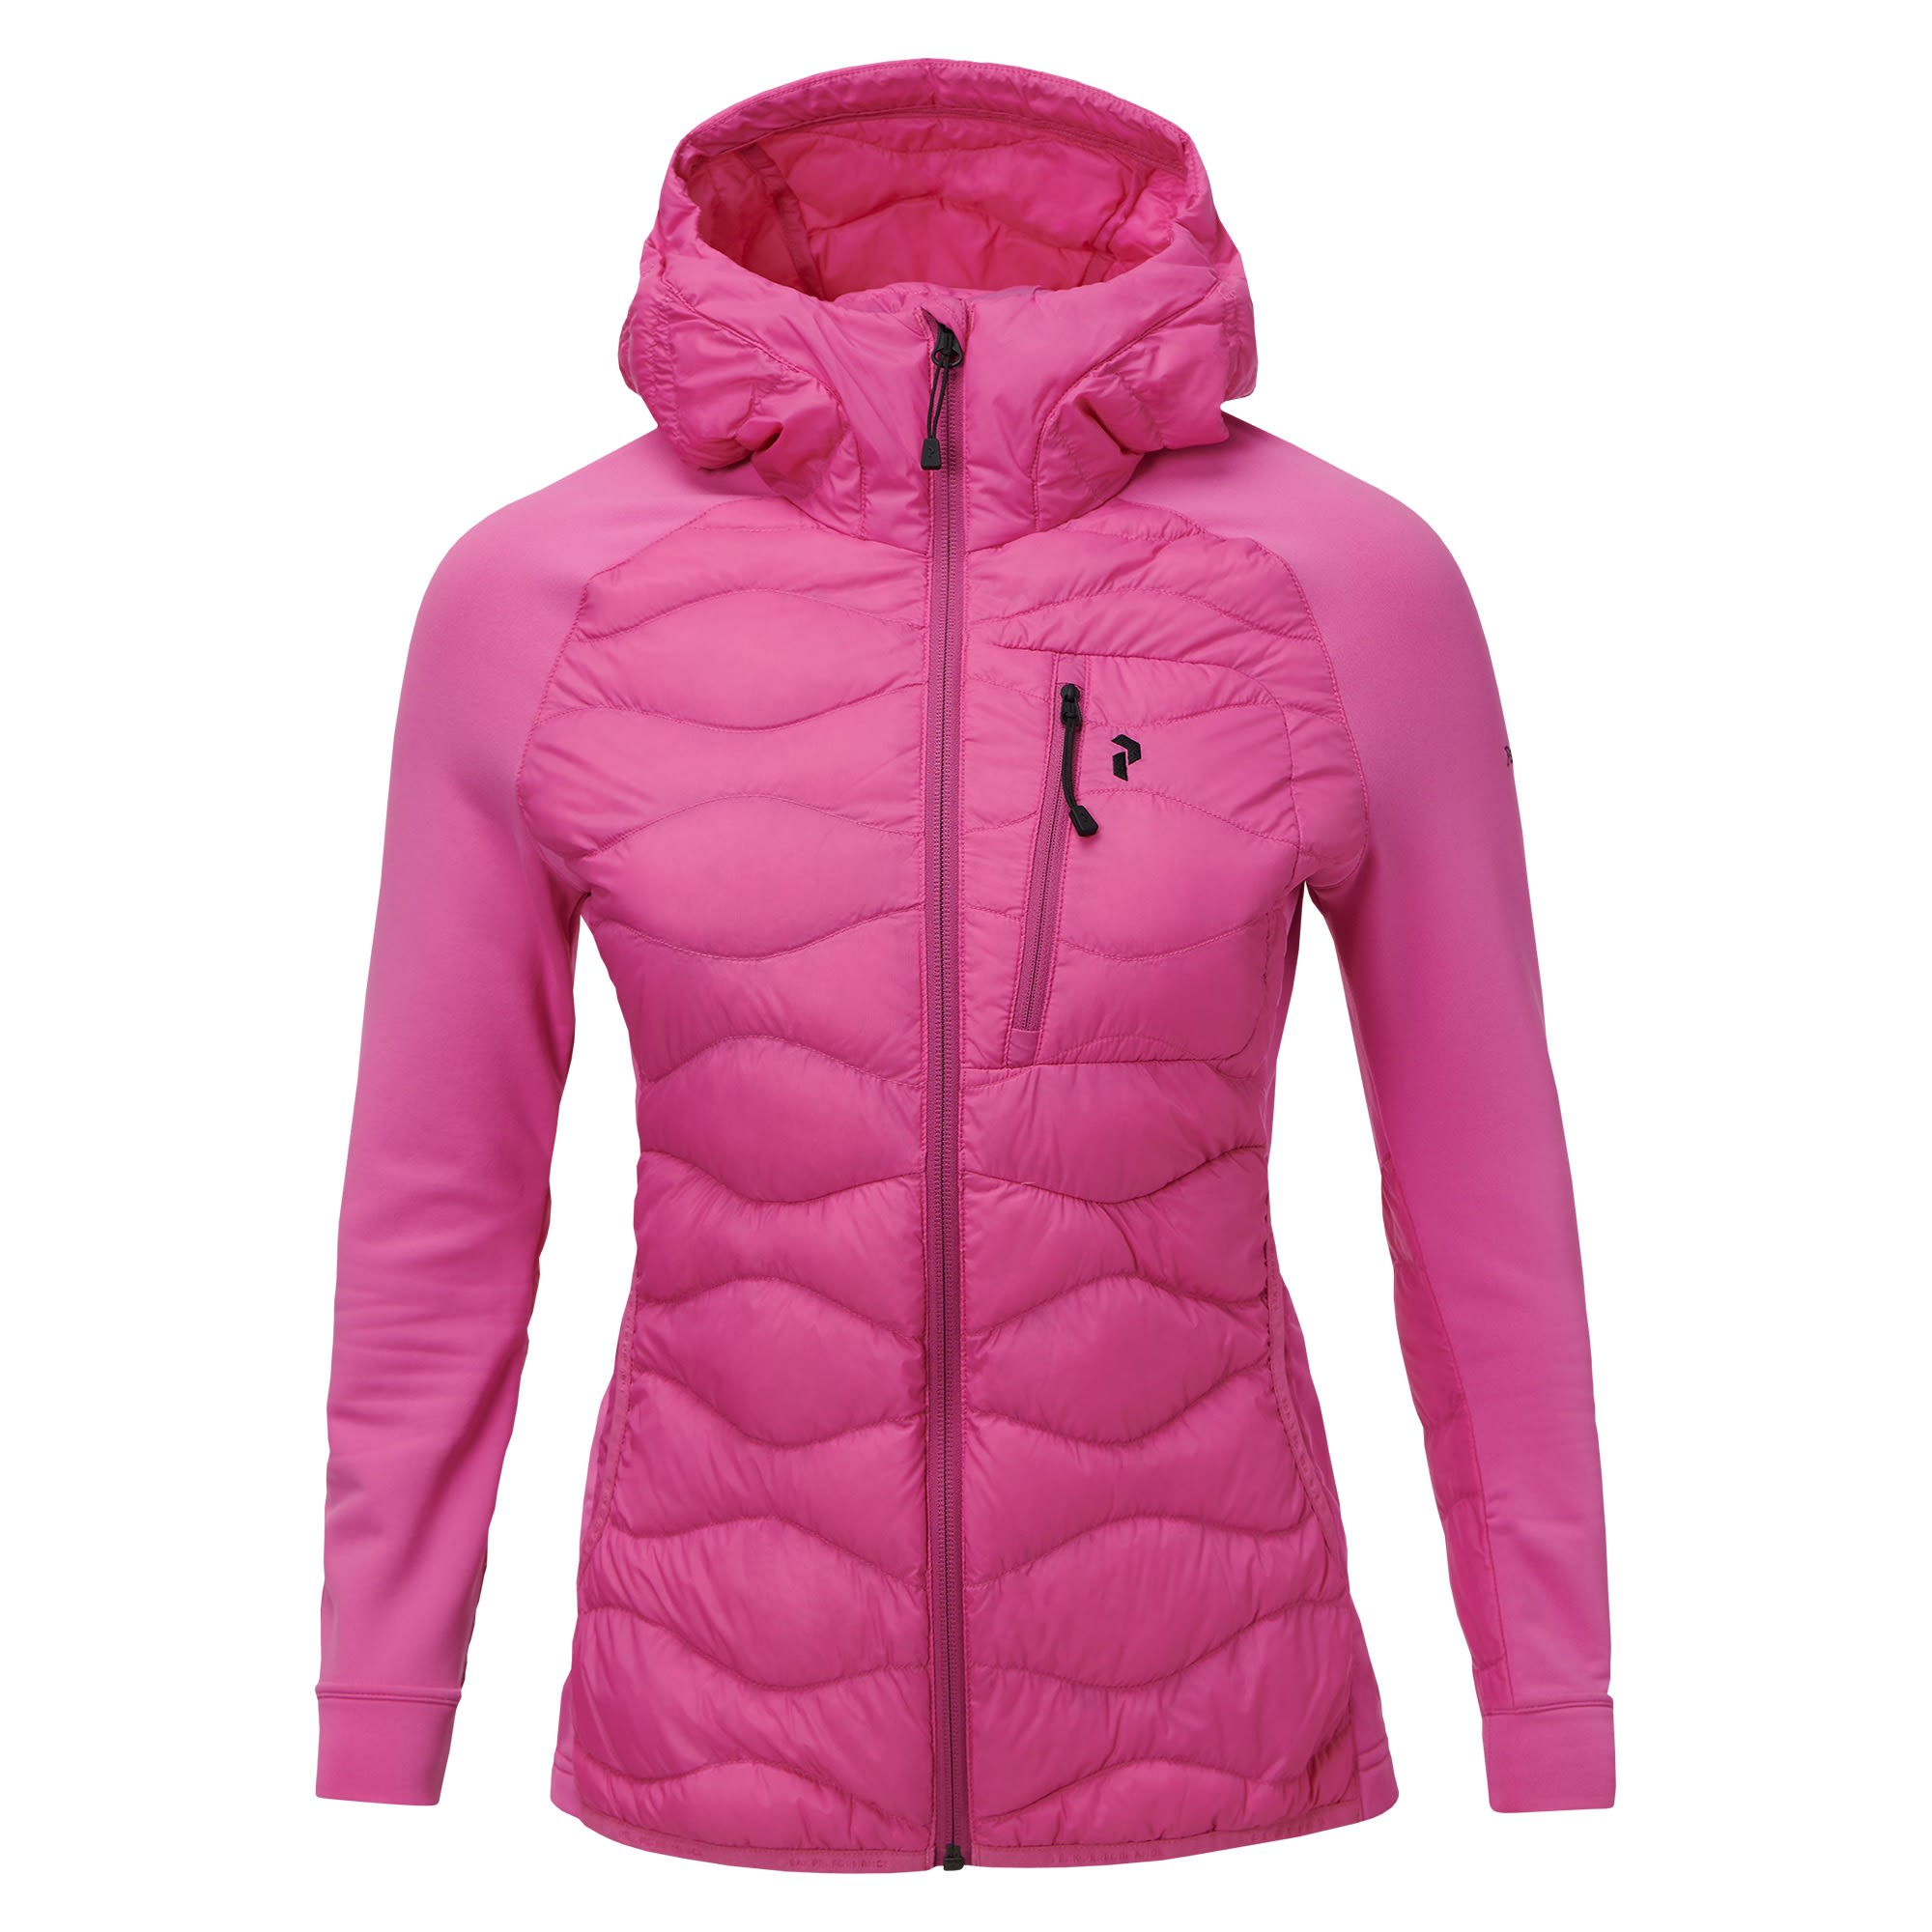 8293efa3 Kjøp Peak Performance Women's Down Helium Hybrid Hood Jacket fra Outnorth